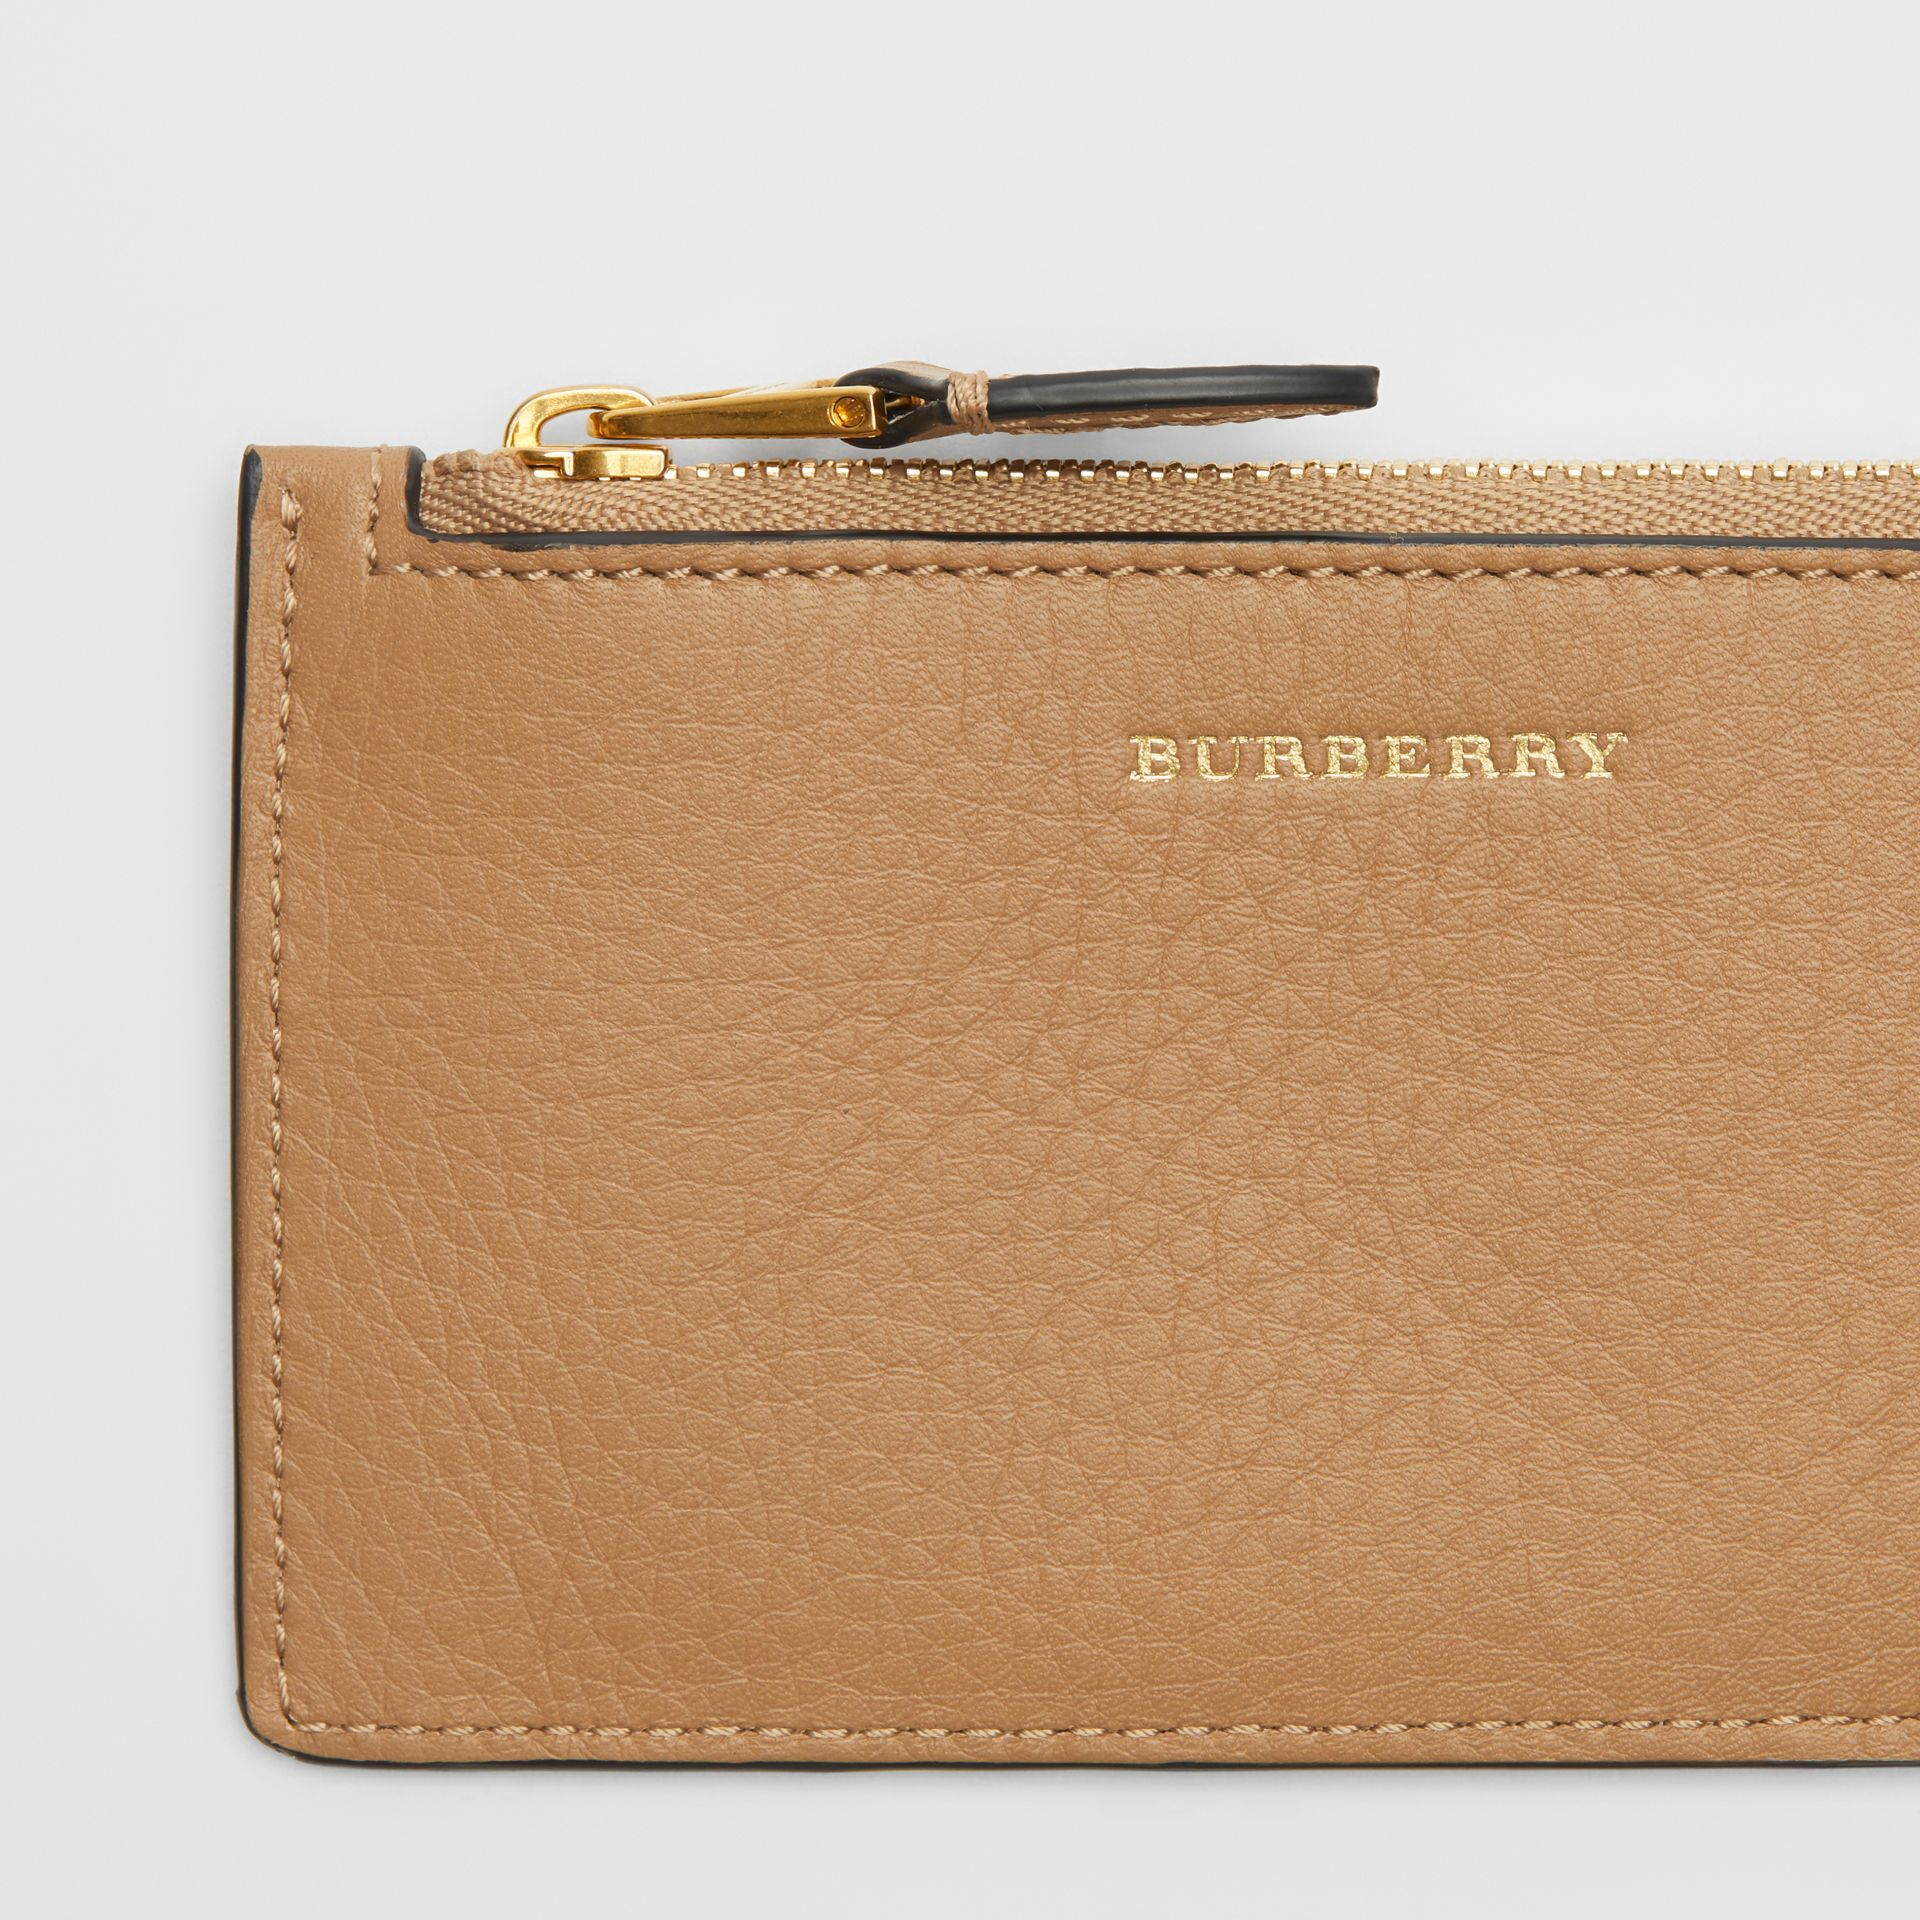 Two-tone Leather Card Case in Light Camel - Women | Burberry United Kingdom - gallery image 1